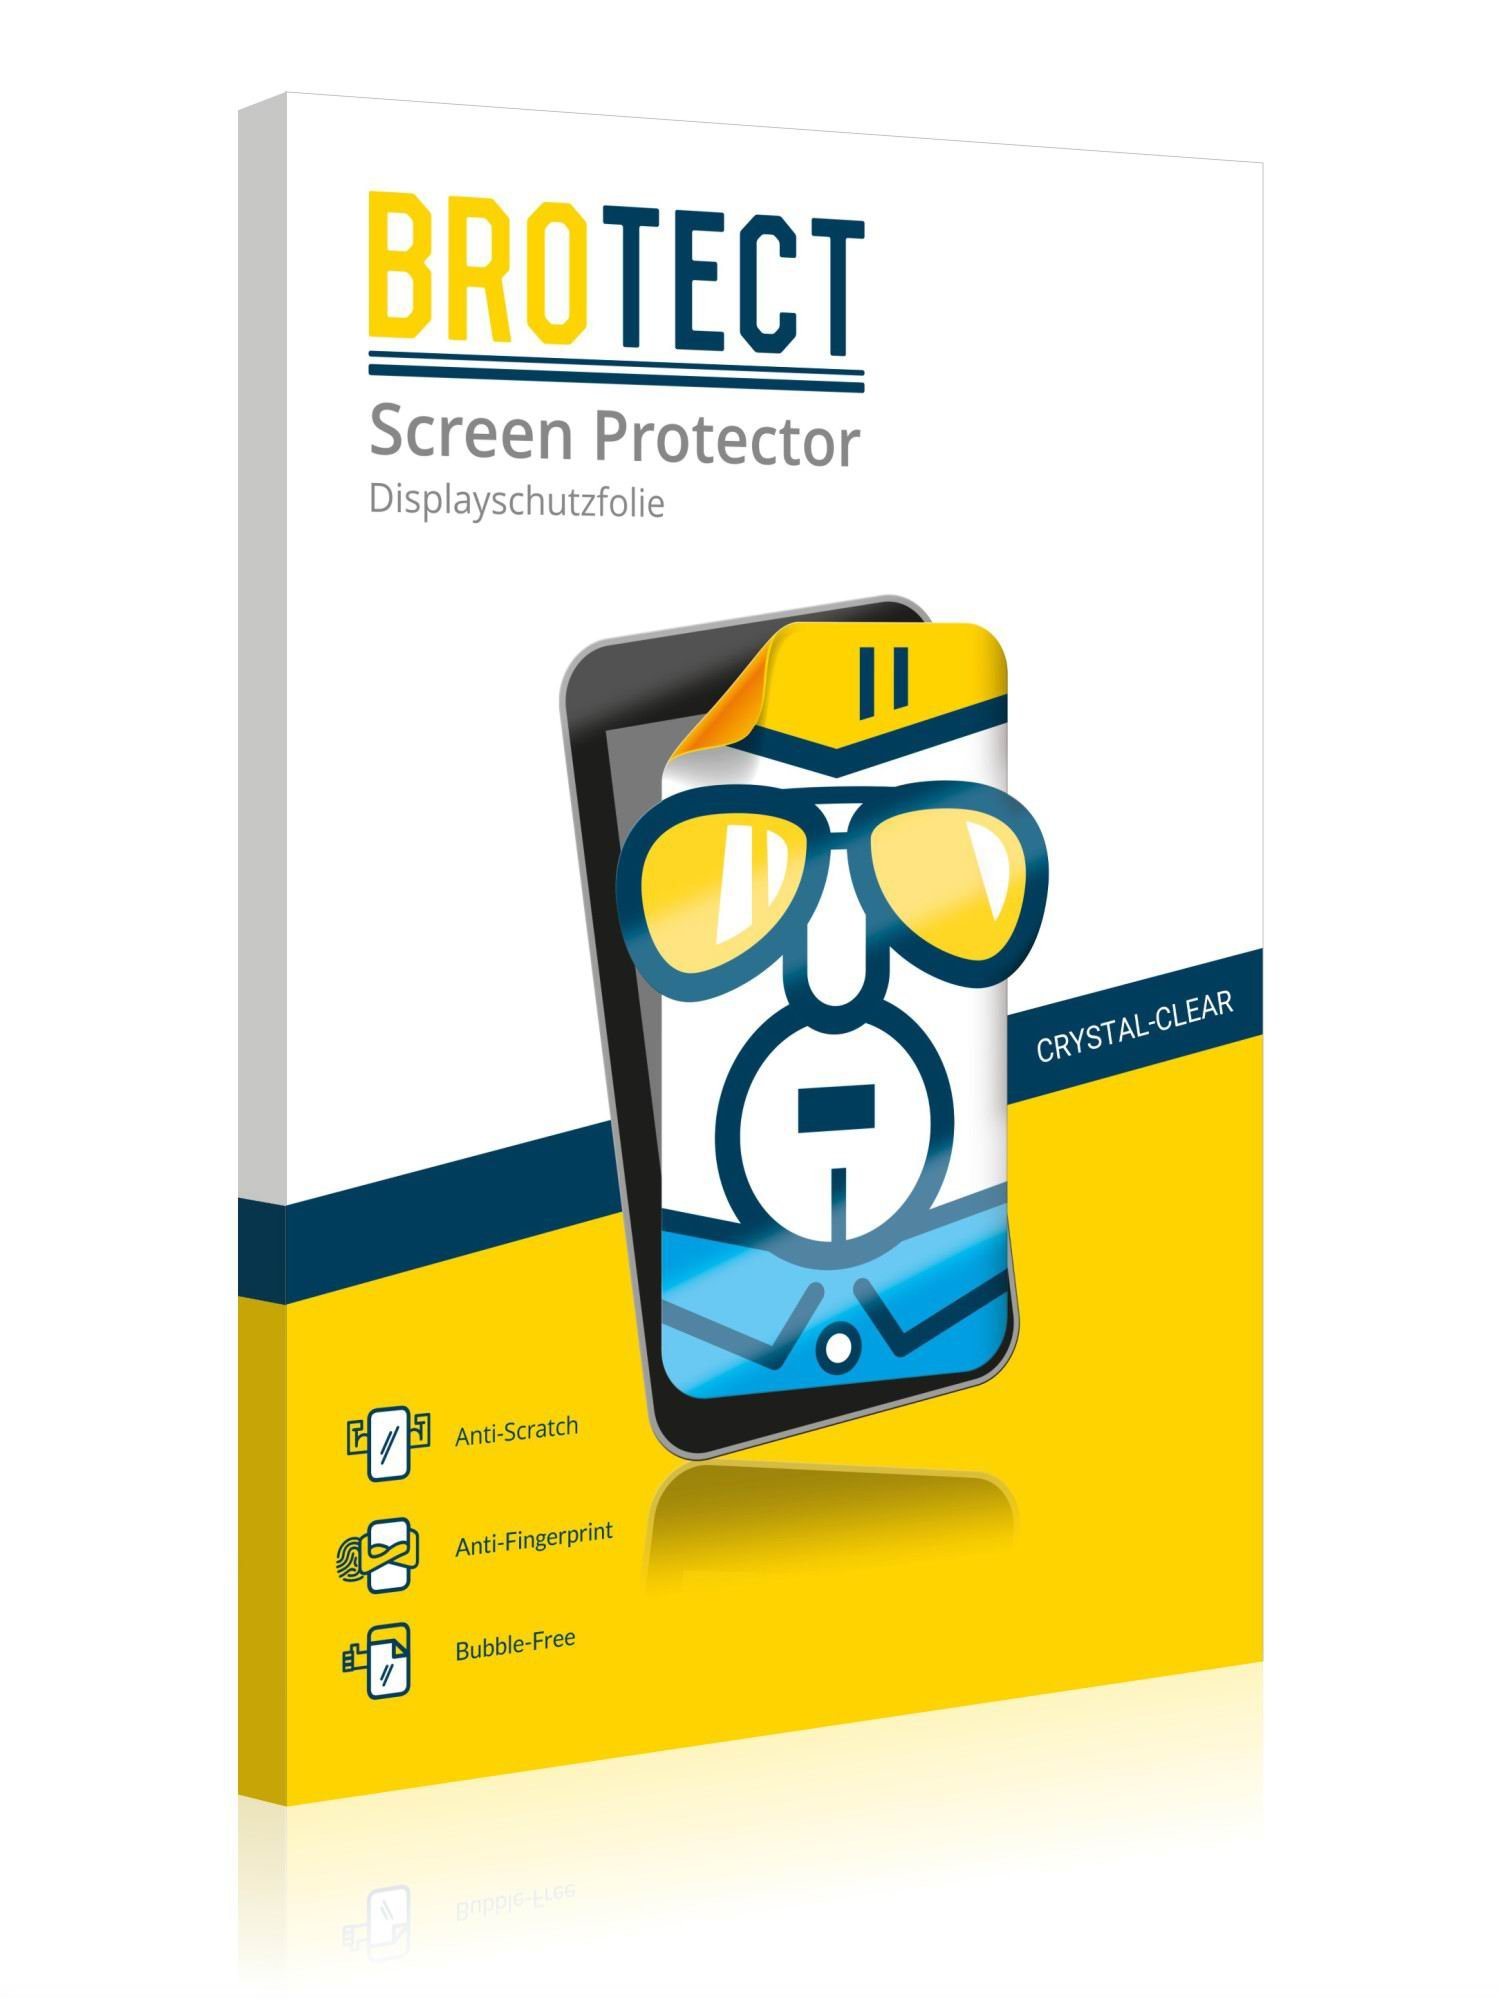 2x BROTECT HD-Clear Screen Protector for Motion Computing F5t, crystal-clear, hard-coated, dirt-repellent